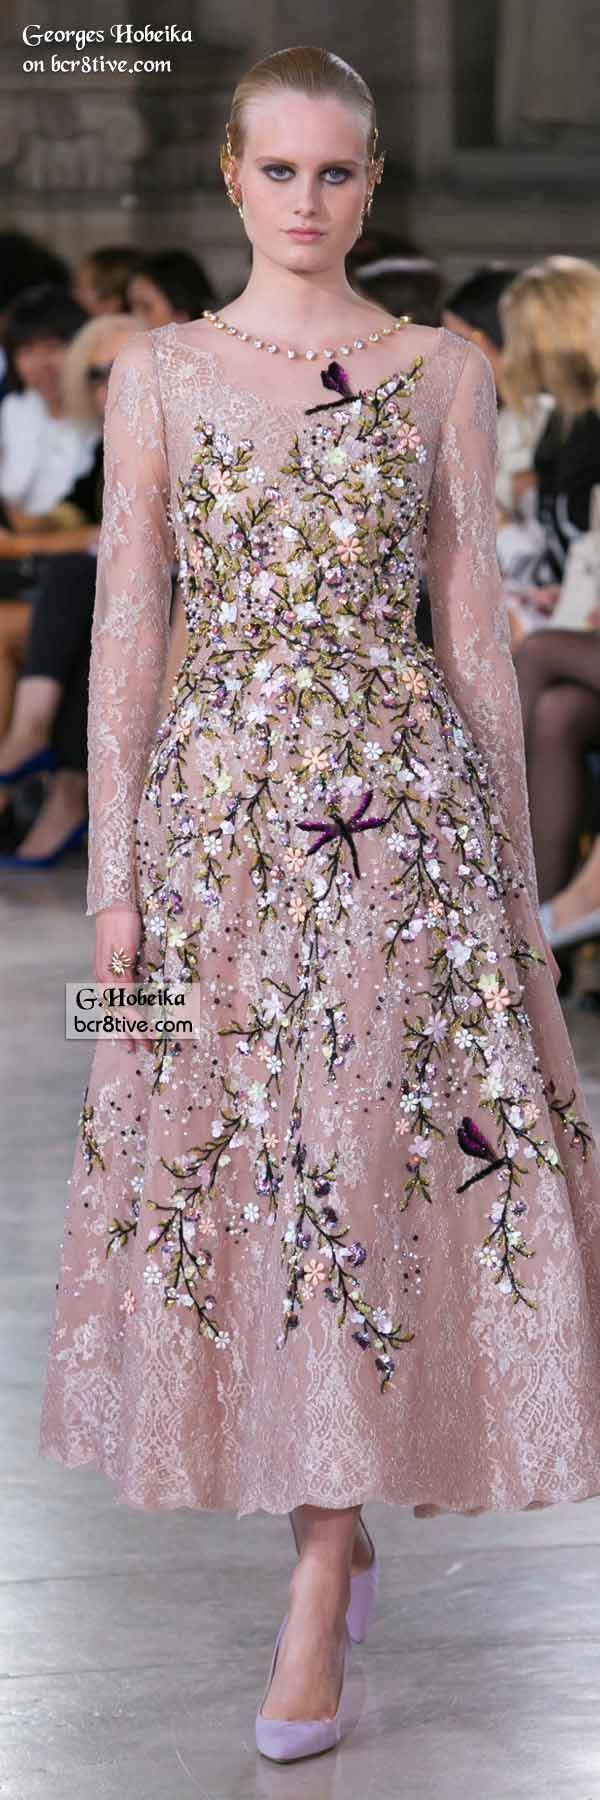 nice Georges Hobeika Fall 2016 Haute Couture... by http://www.globalfashionista.xyz/high-fashion/georges-hobeika-fall-2016-haute-couture-2/